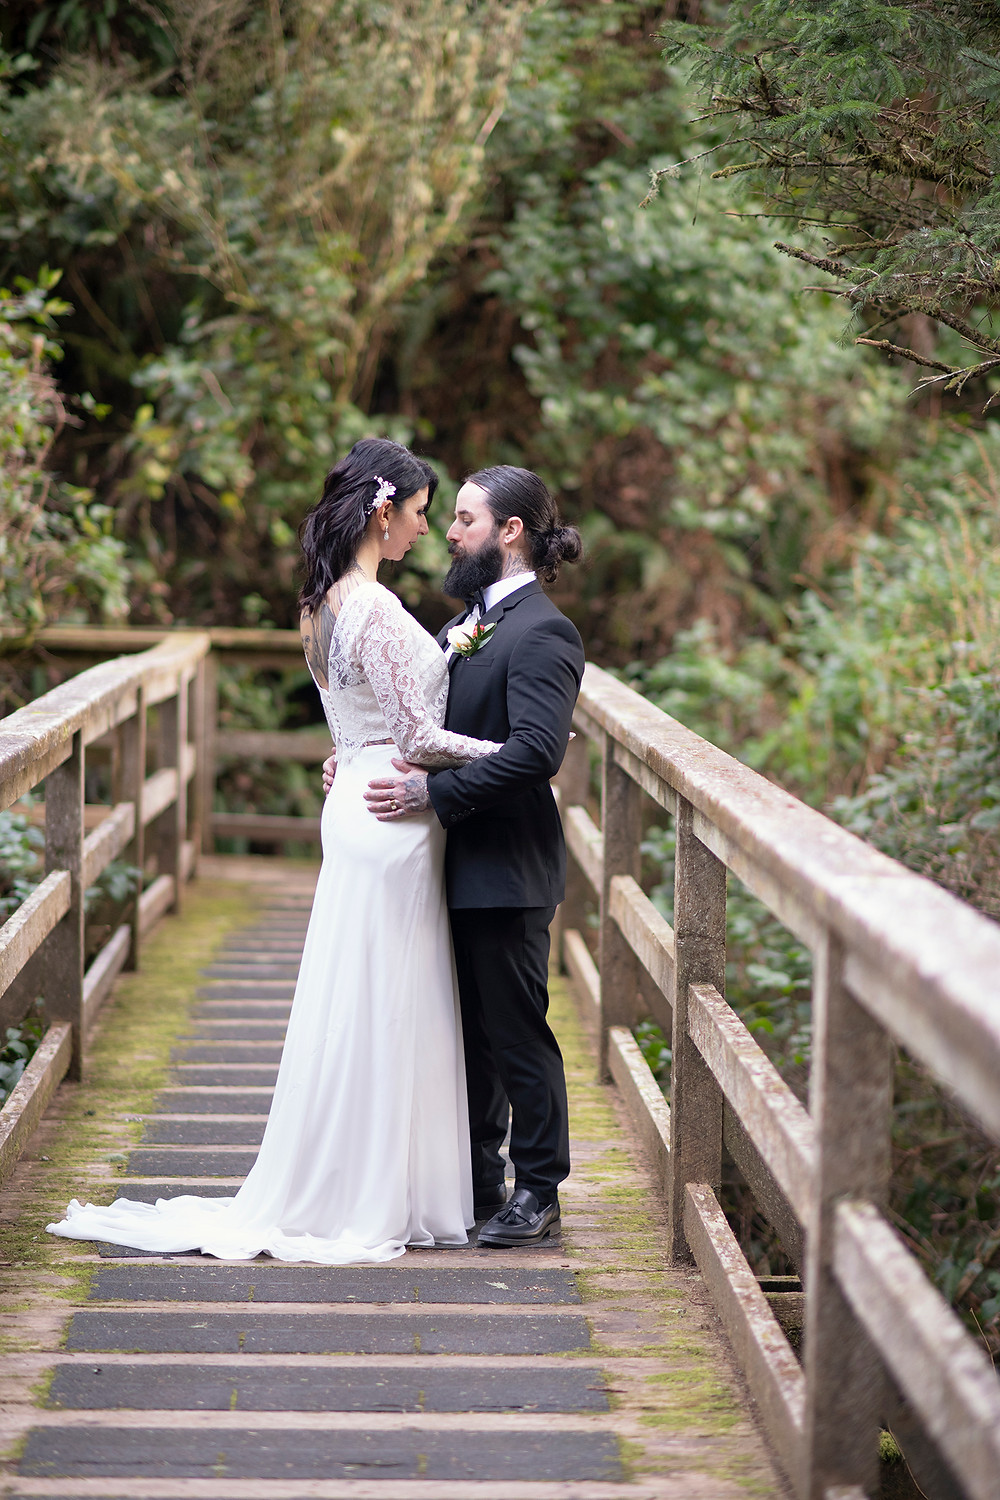 Ucluelet Elopement in the forest. Photographed by Kaitlyn Shea.